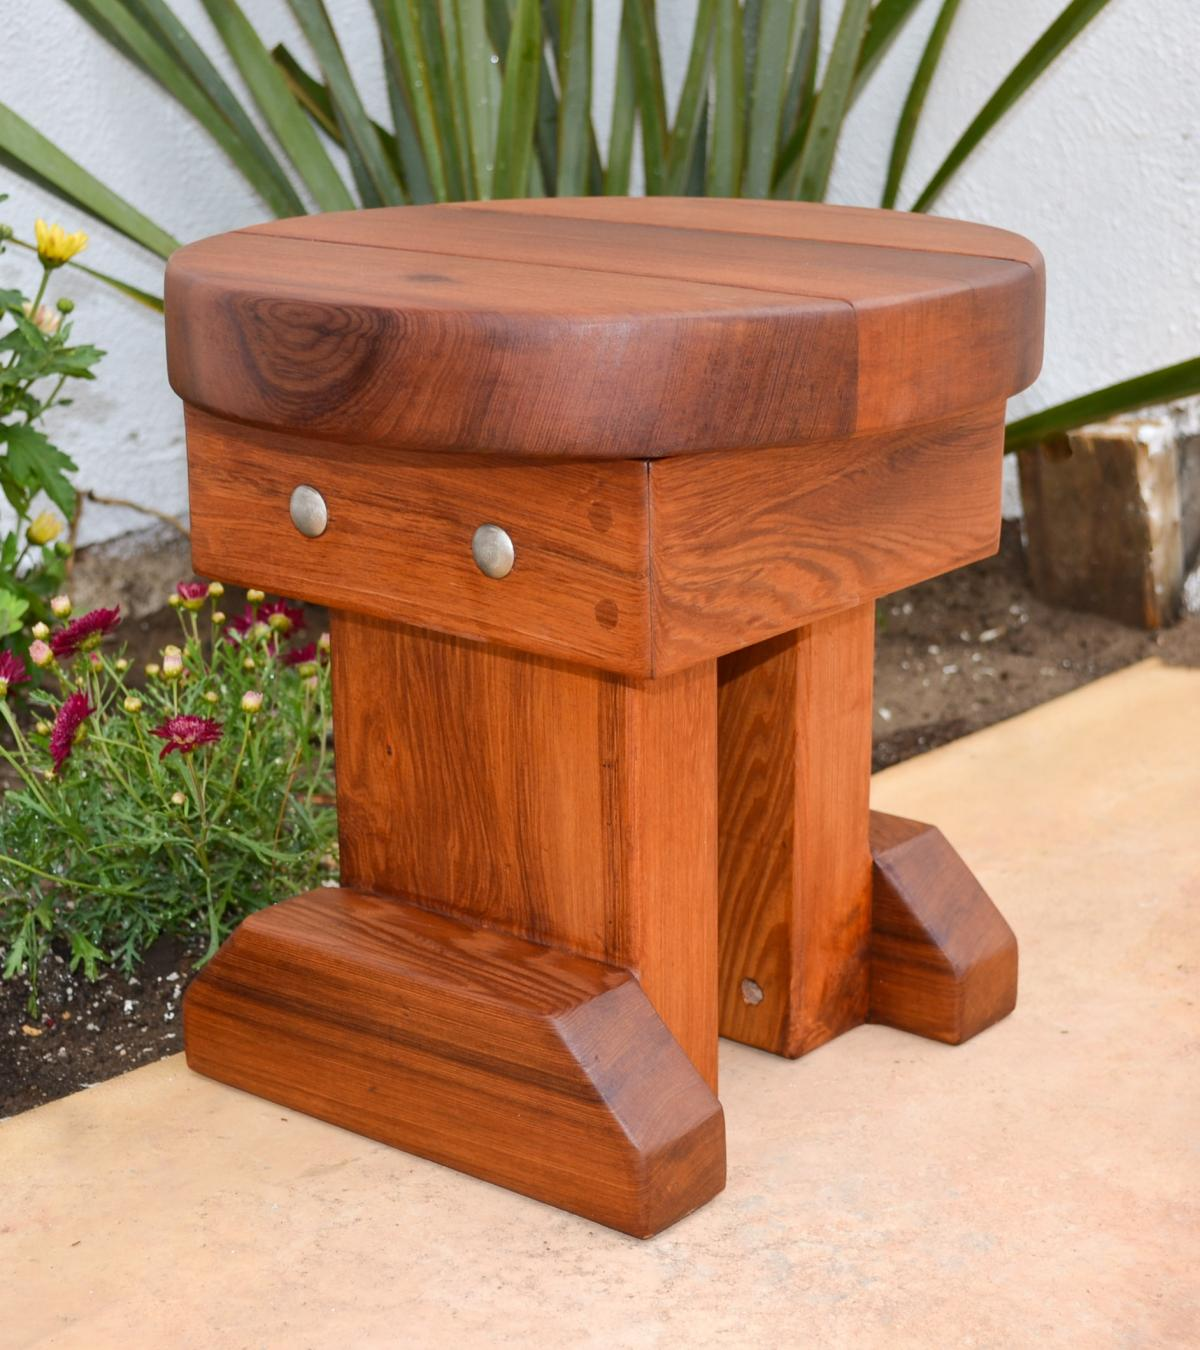 round gold accent table the fantastic cool small cherry wood end inch side redwood tables mini options old growth transparent premium sealant inches tall young america furniture